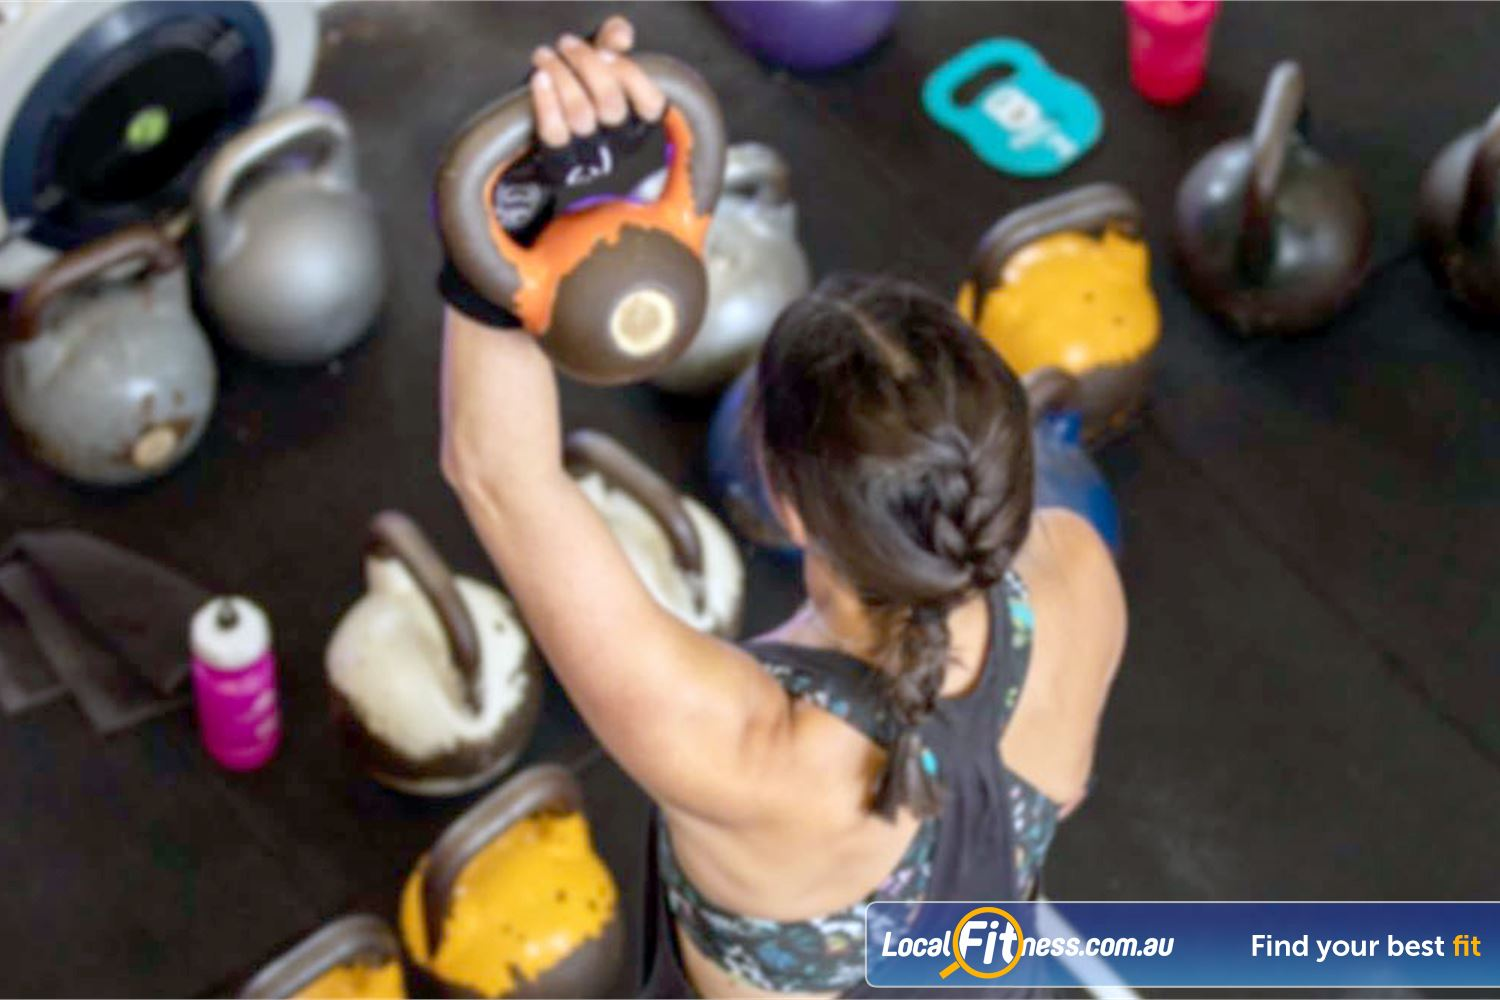 KettleFit Near St Kilda East KettleFit works both your aerobic fitness and strength simultaneously.